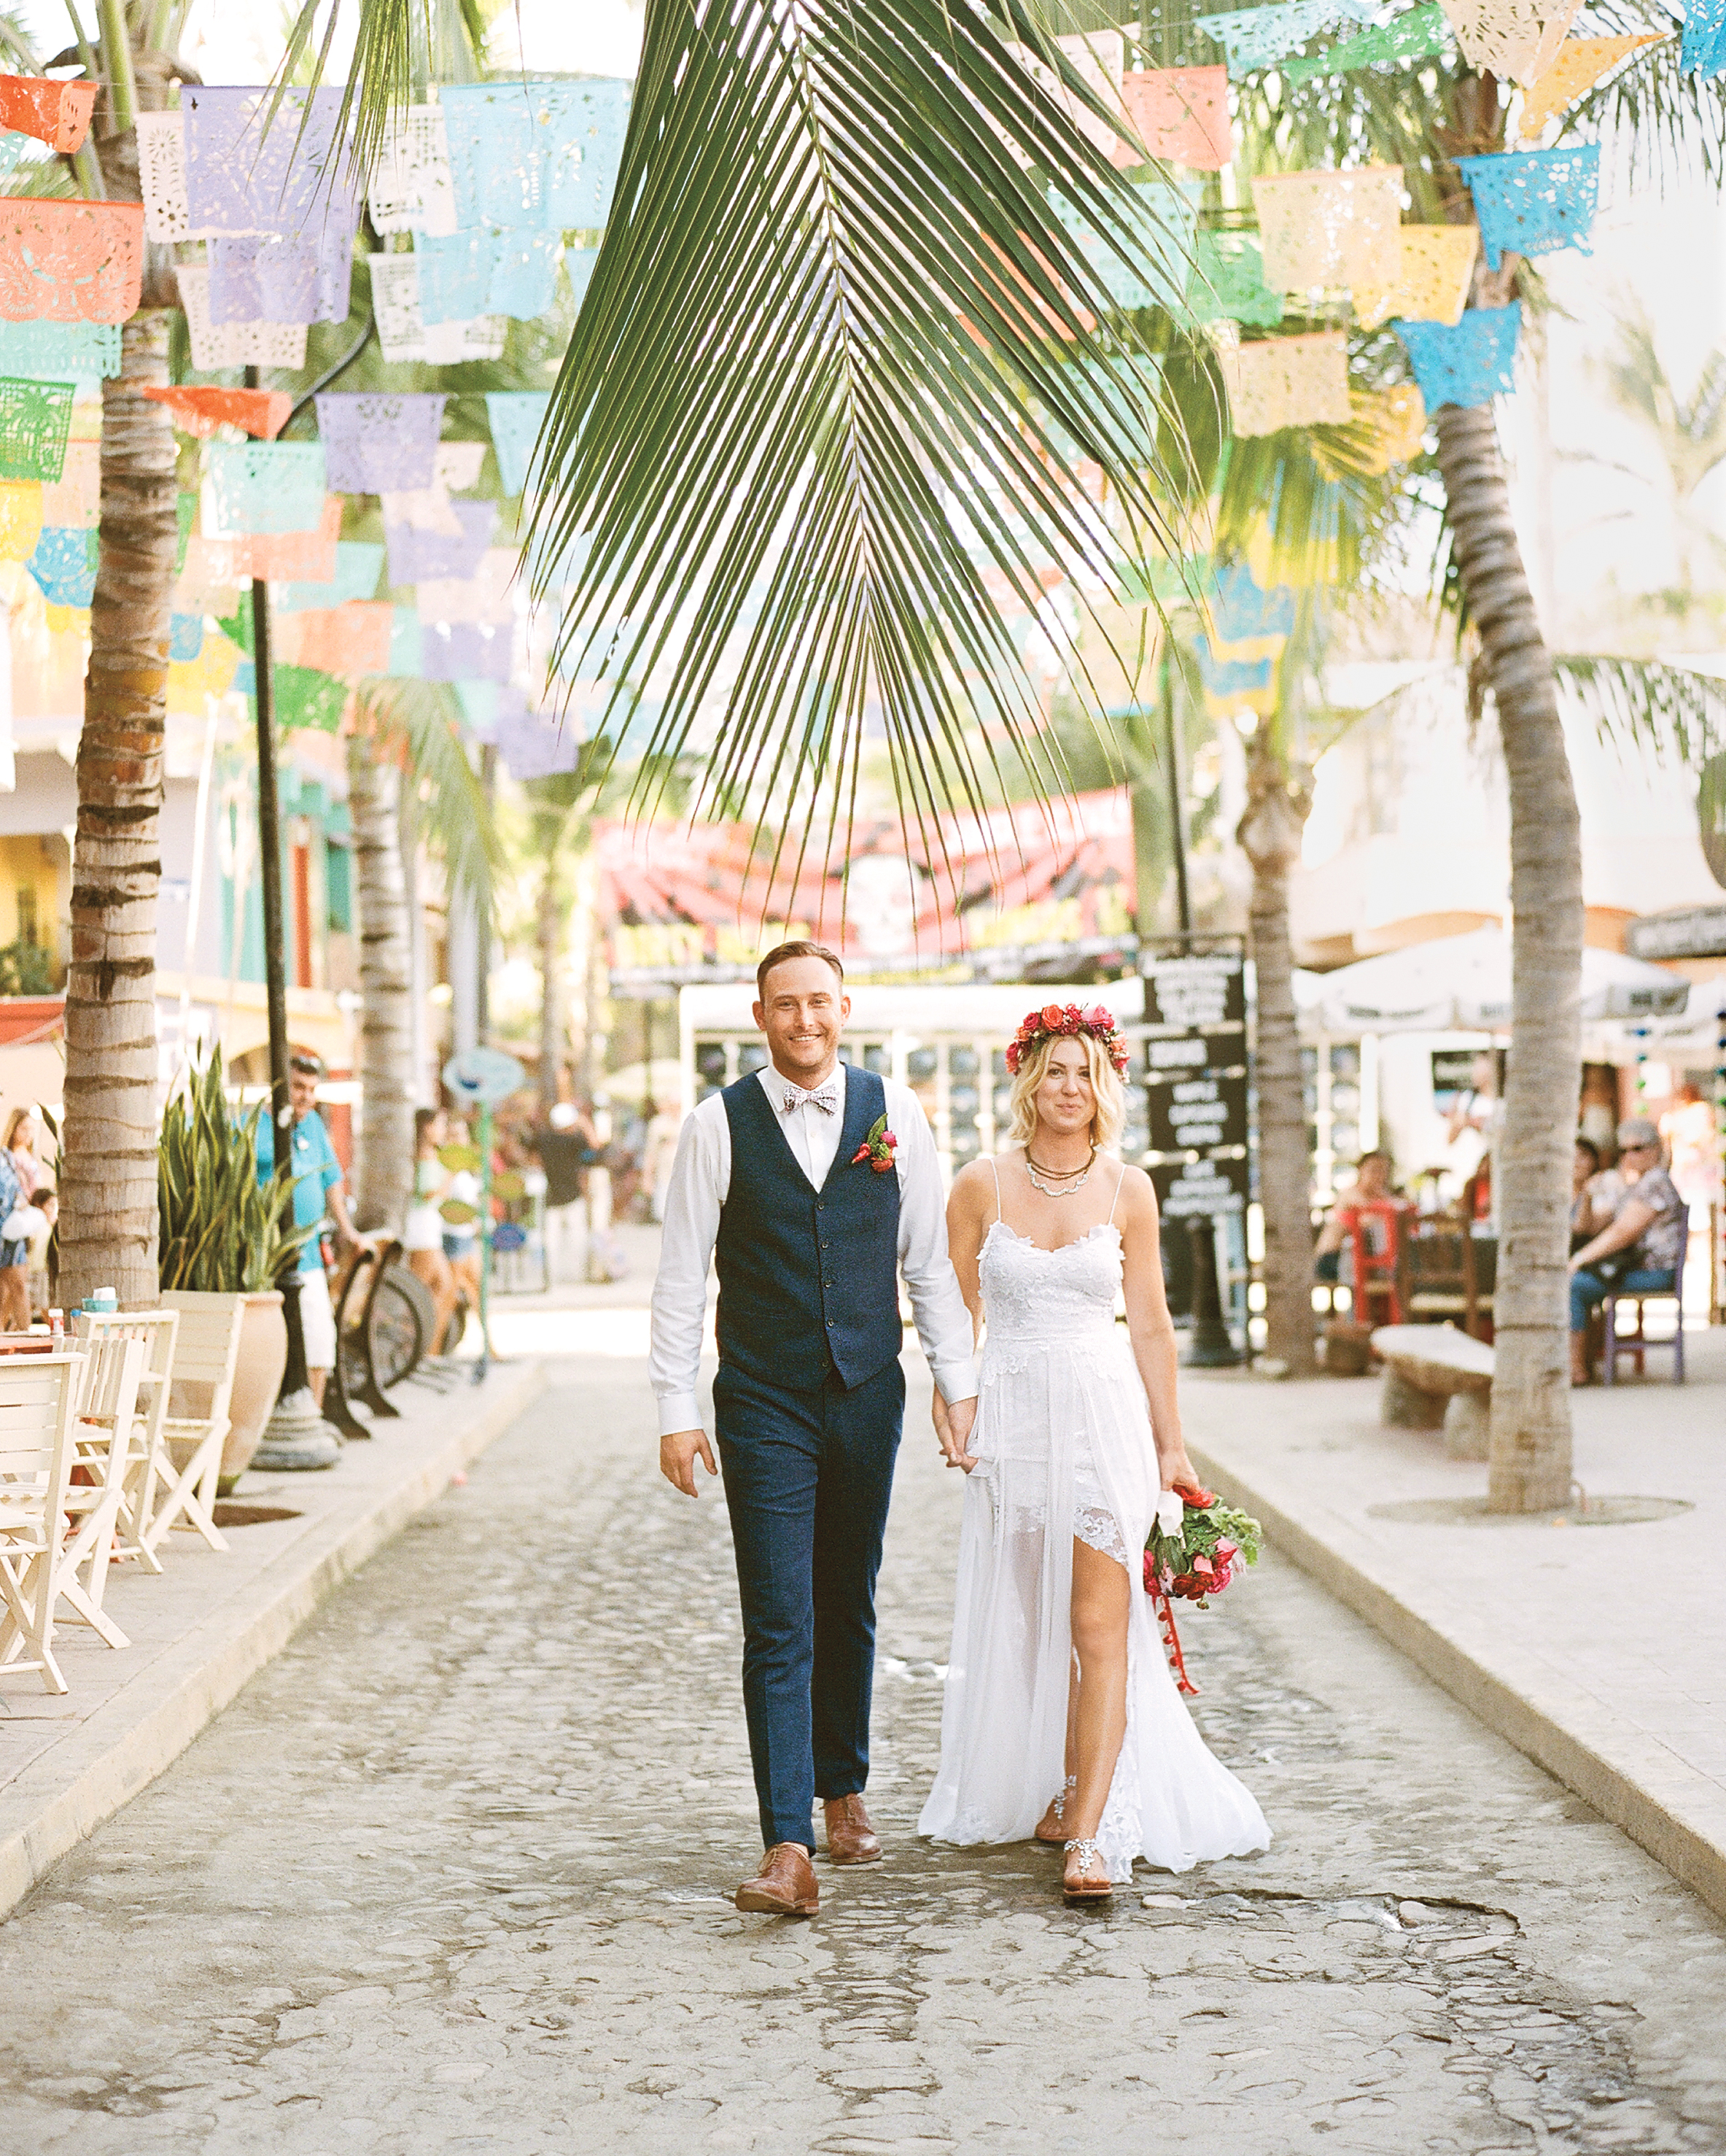 This Mexico Wedding Was Bursting with Bold Colors